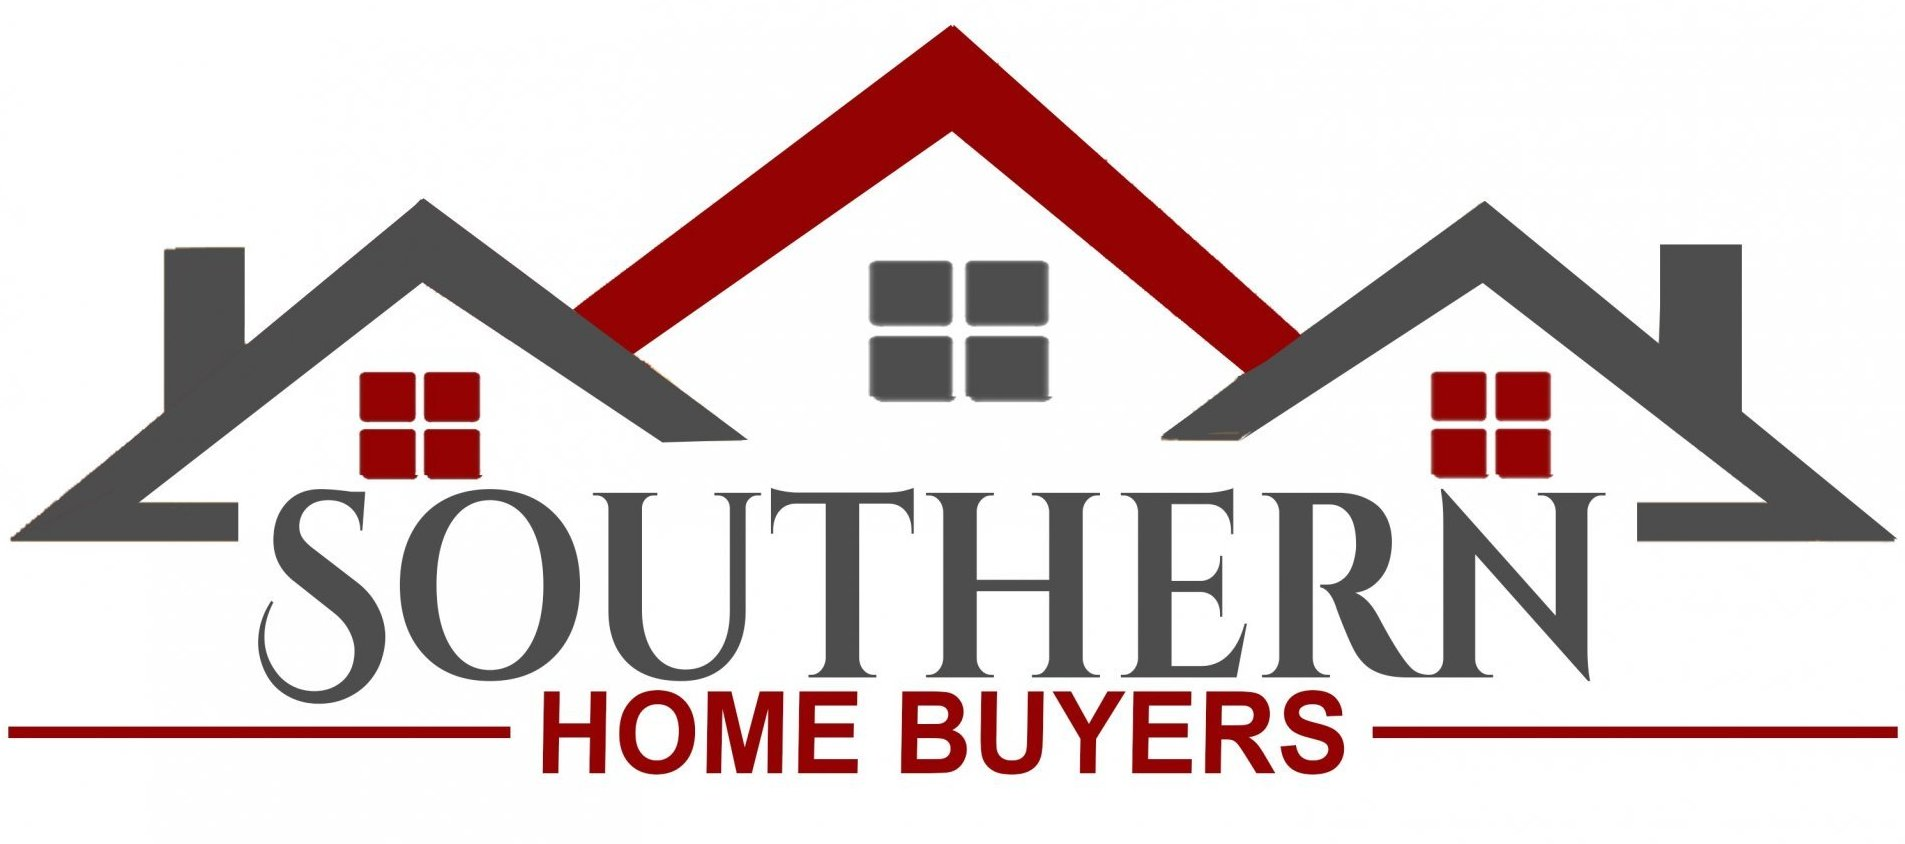 Southern Home Buyers logo